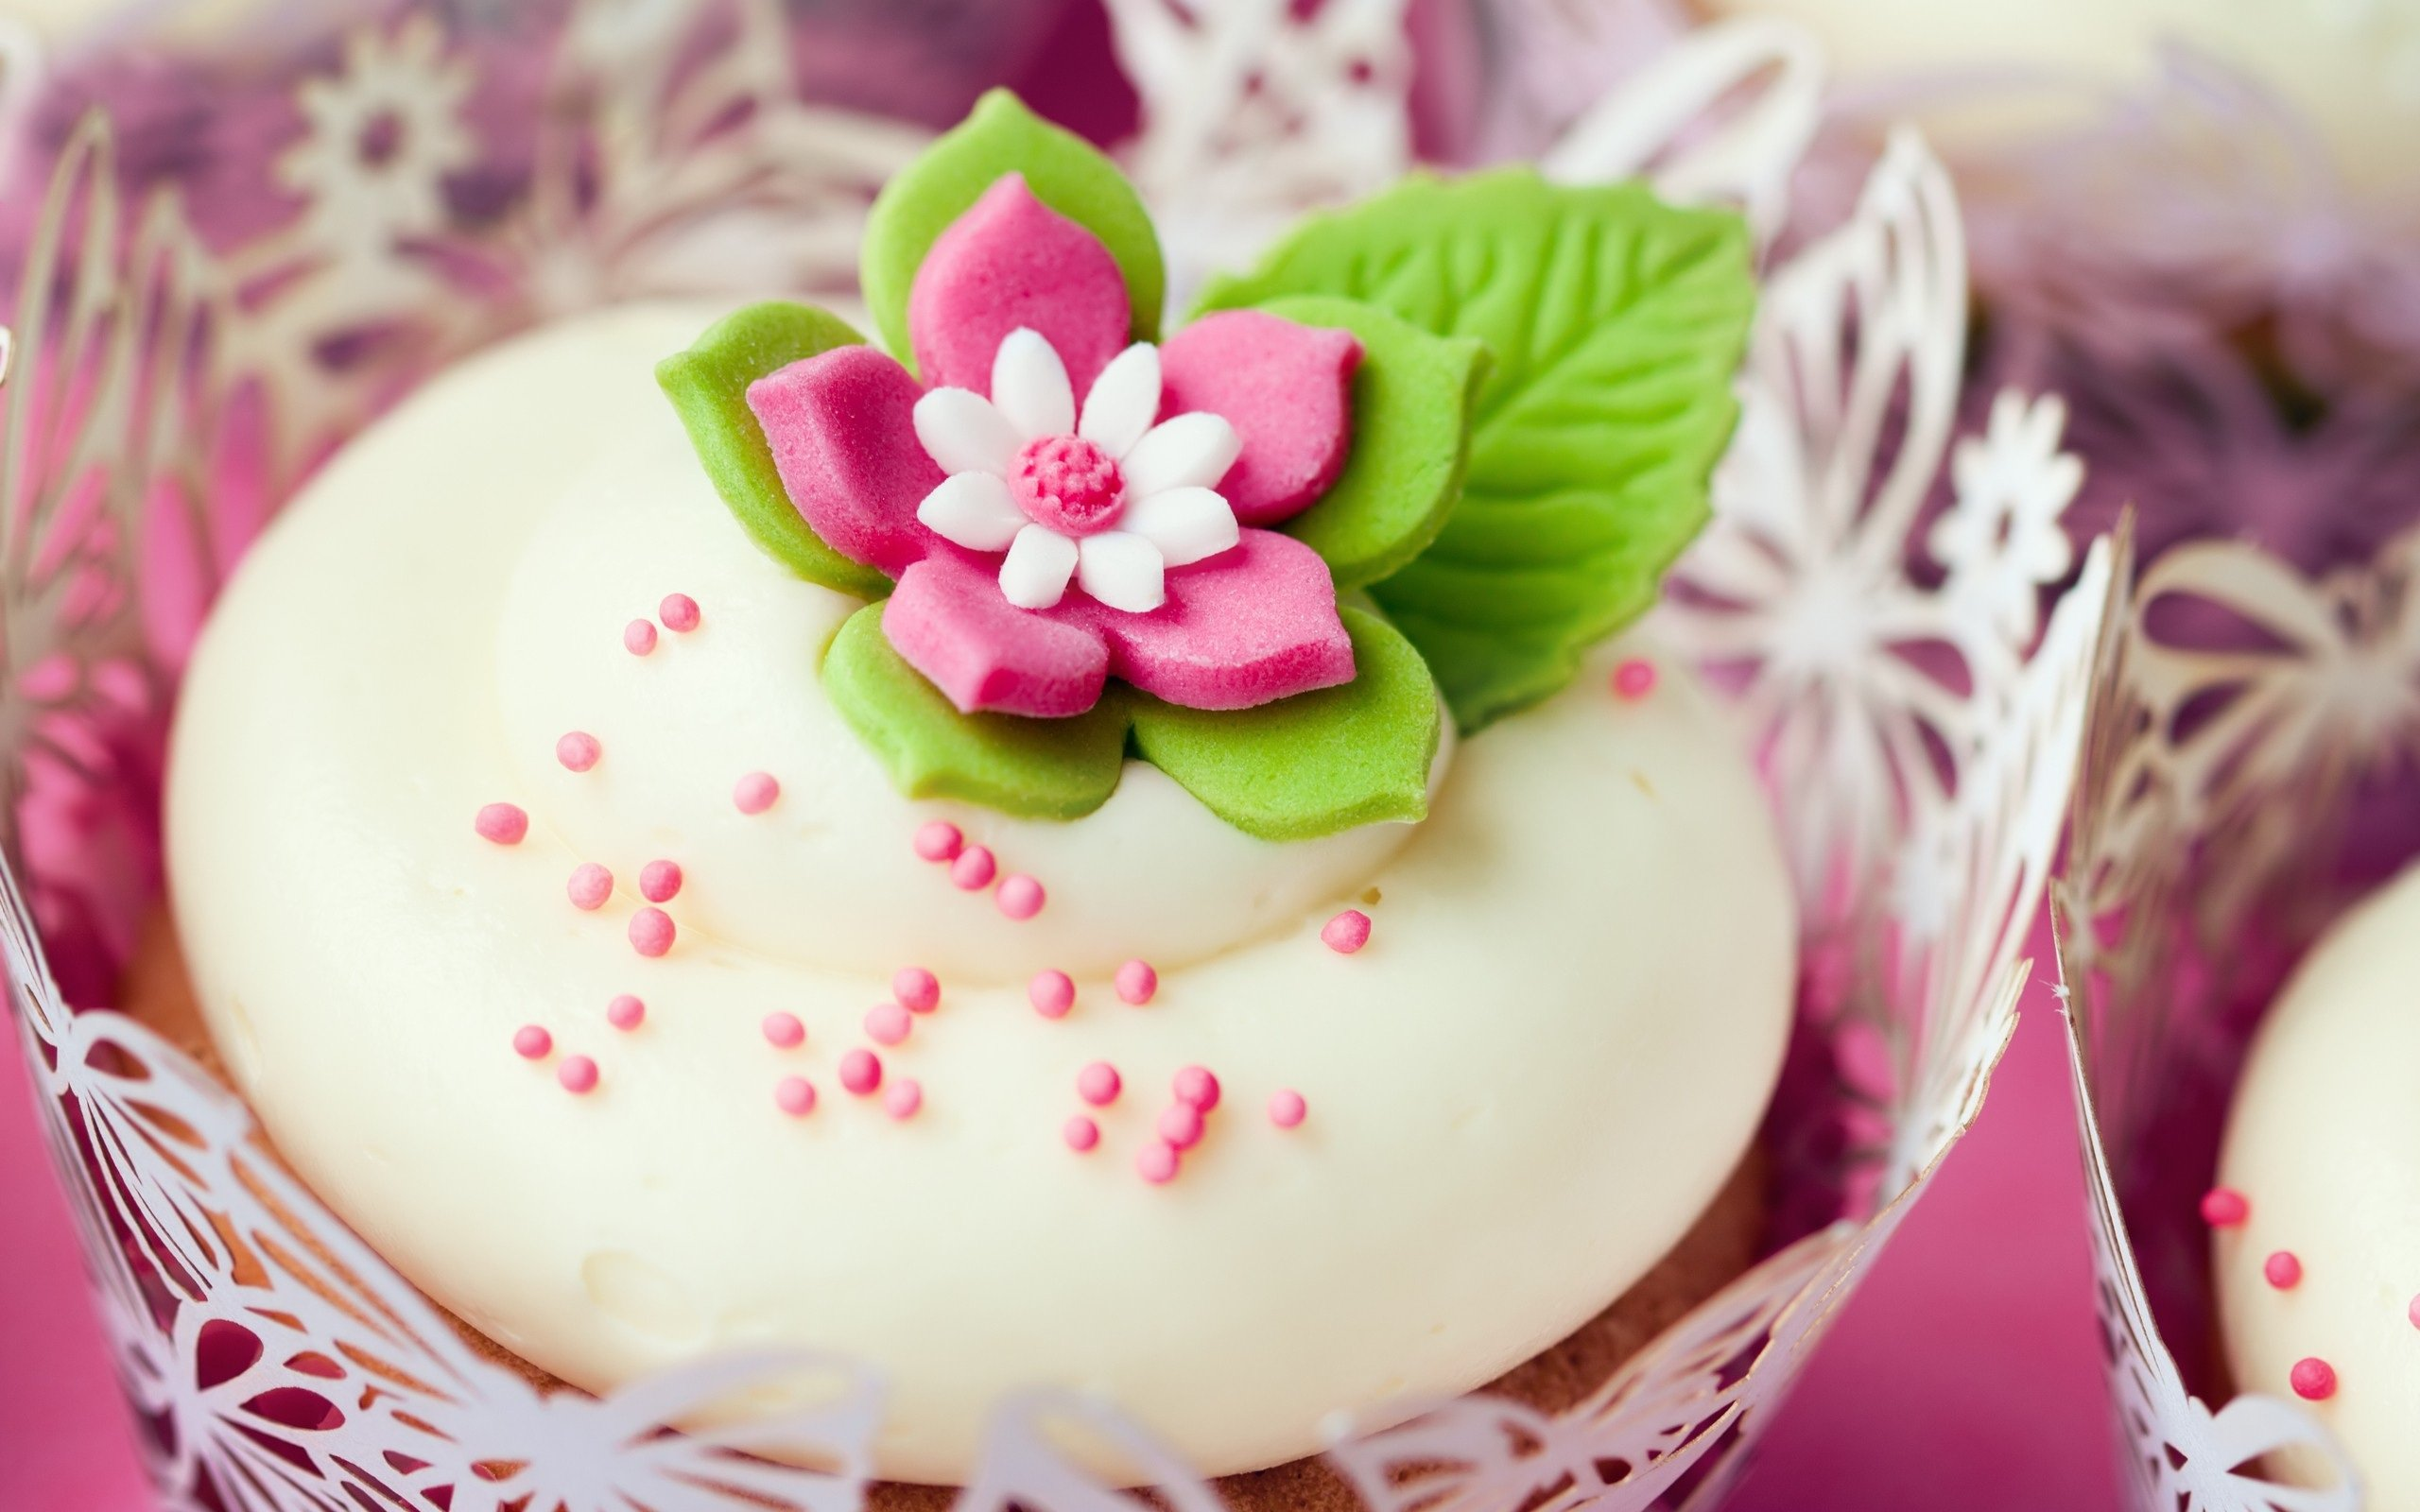 Cupcake Wallpaper HD wallpaper background 2560x1600